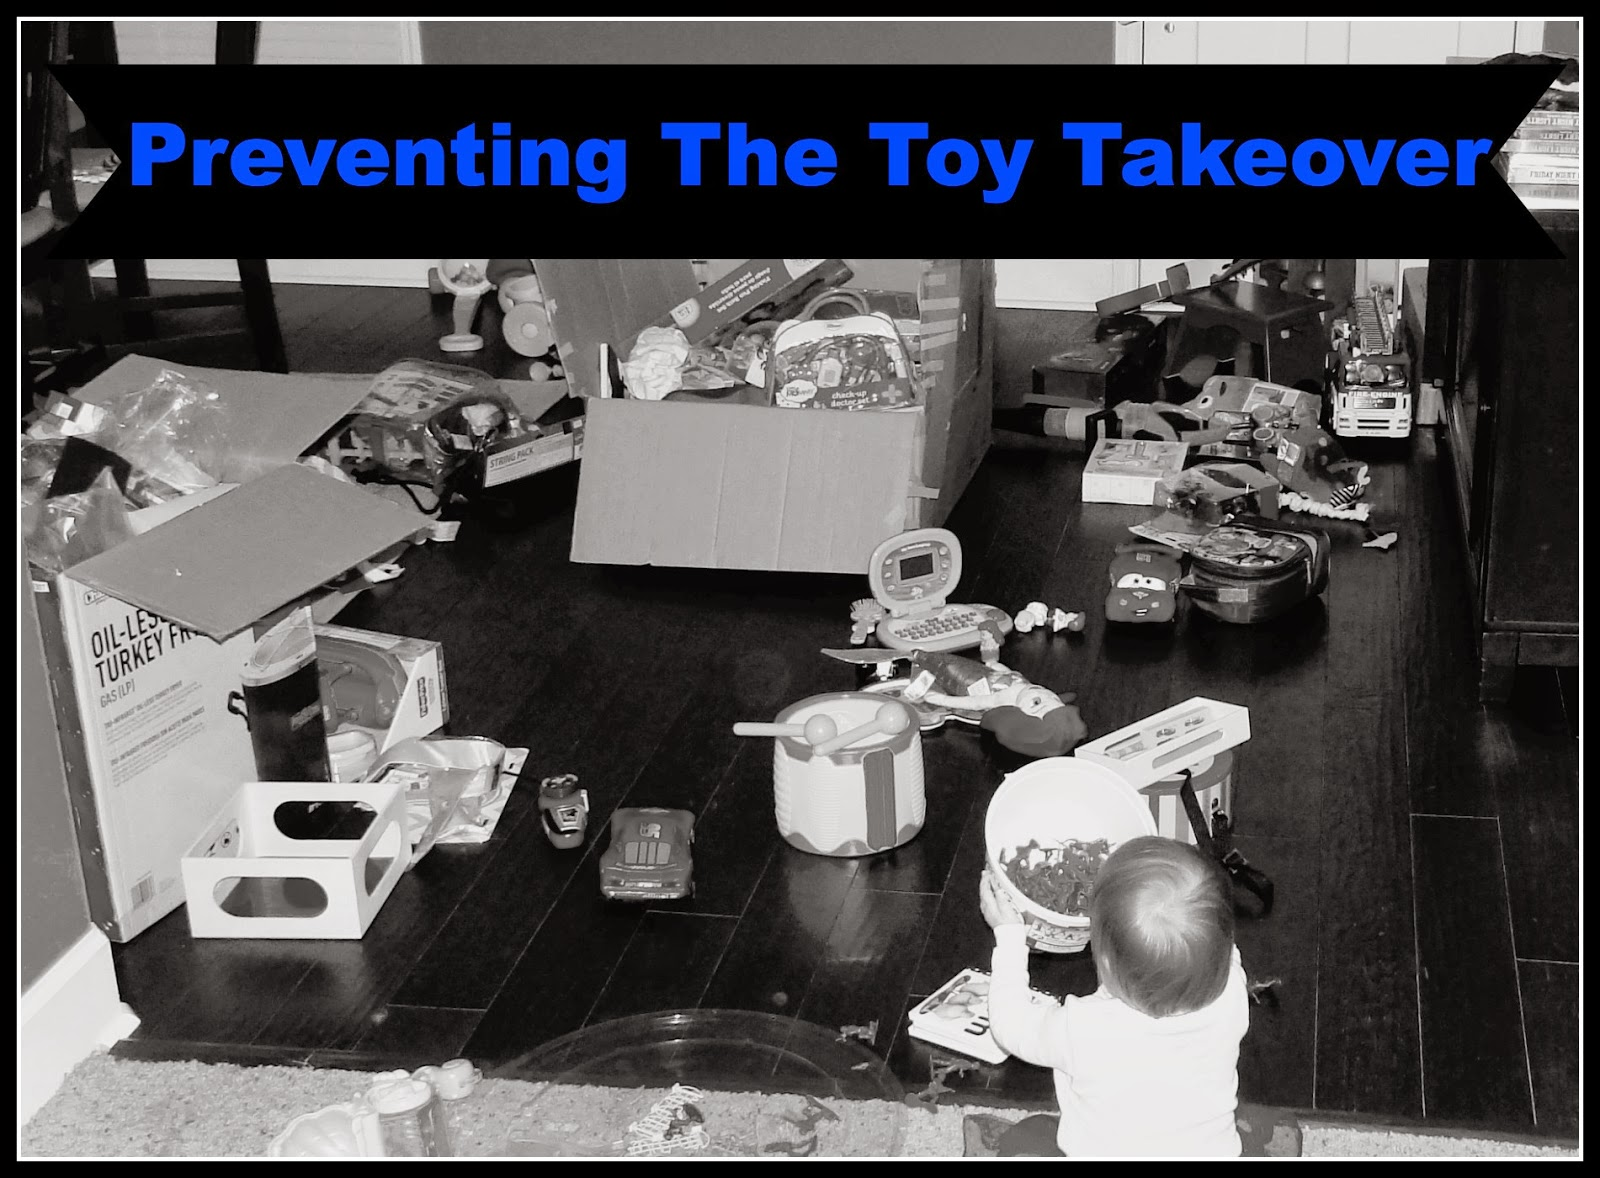 Preventing the Toy Takeover